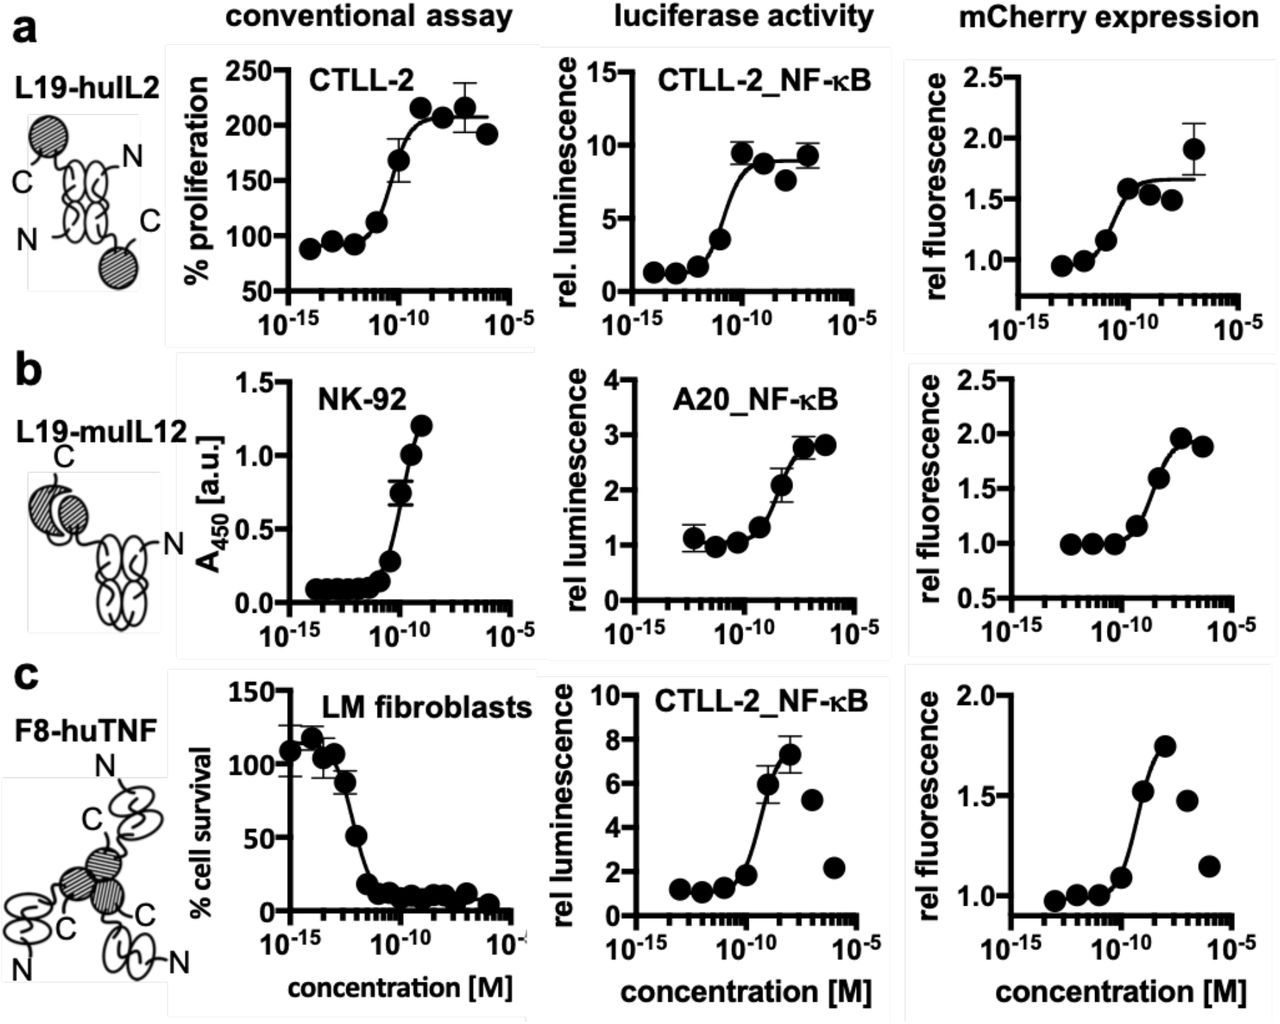 Comparison of the expression of luciferase and mCherry by the newly generated reporter cell lines with the response obtained with the same proteins in the conventional assay. The immunocytokines that were used for this assay are schematically depicted (the antibody moiety is depicted as empty symbols and the cytokine moieties as hatched areas) [a] the proliferation of CTLL-2 and the response of the CTLL-2 reporter cell line triggered by L19-IL2 [b] the production of interferon-γ by NK-92 cells and the response of the A20 reporter cell line triggered by L19-IL12 [c] the cytotoxicity of F8-TNF for L-M fibroblasts compared to the response of the CTLL-2 reporter cell line to F8-TNF. In the cases where a strong hook effect was observed, only the sigmoidal part was used for curve fitting as indicated by the solid line.